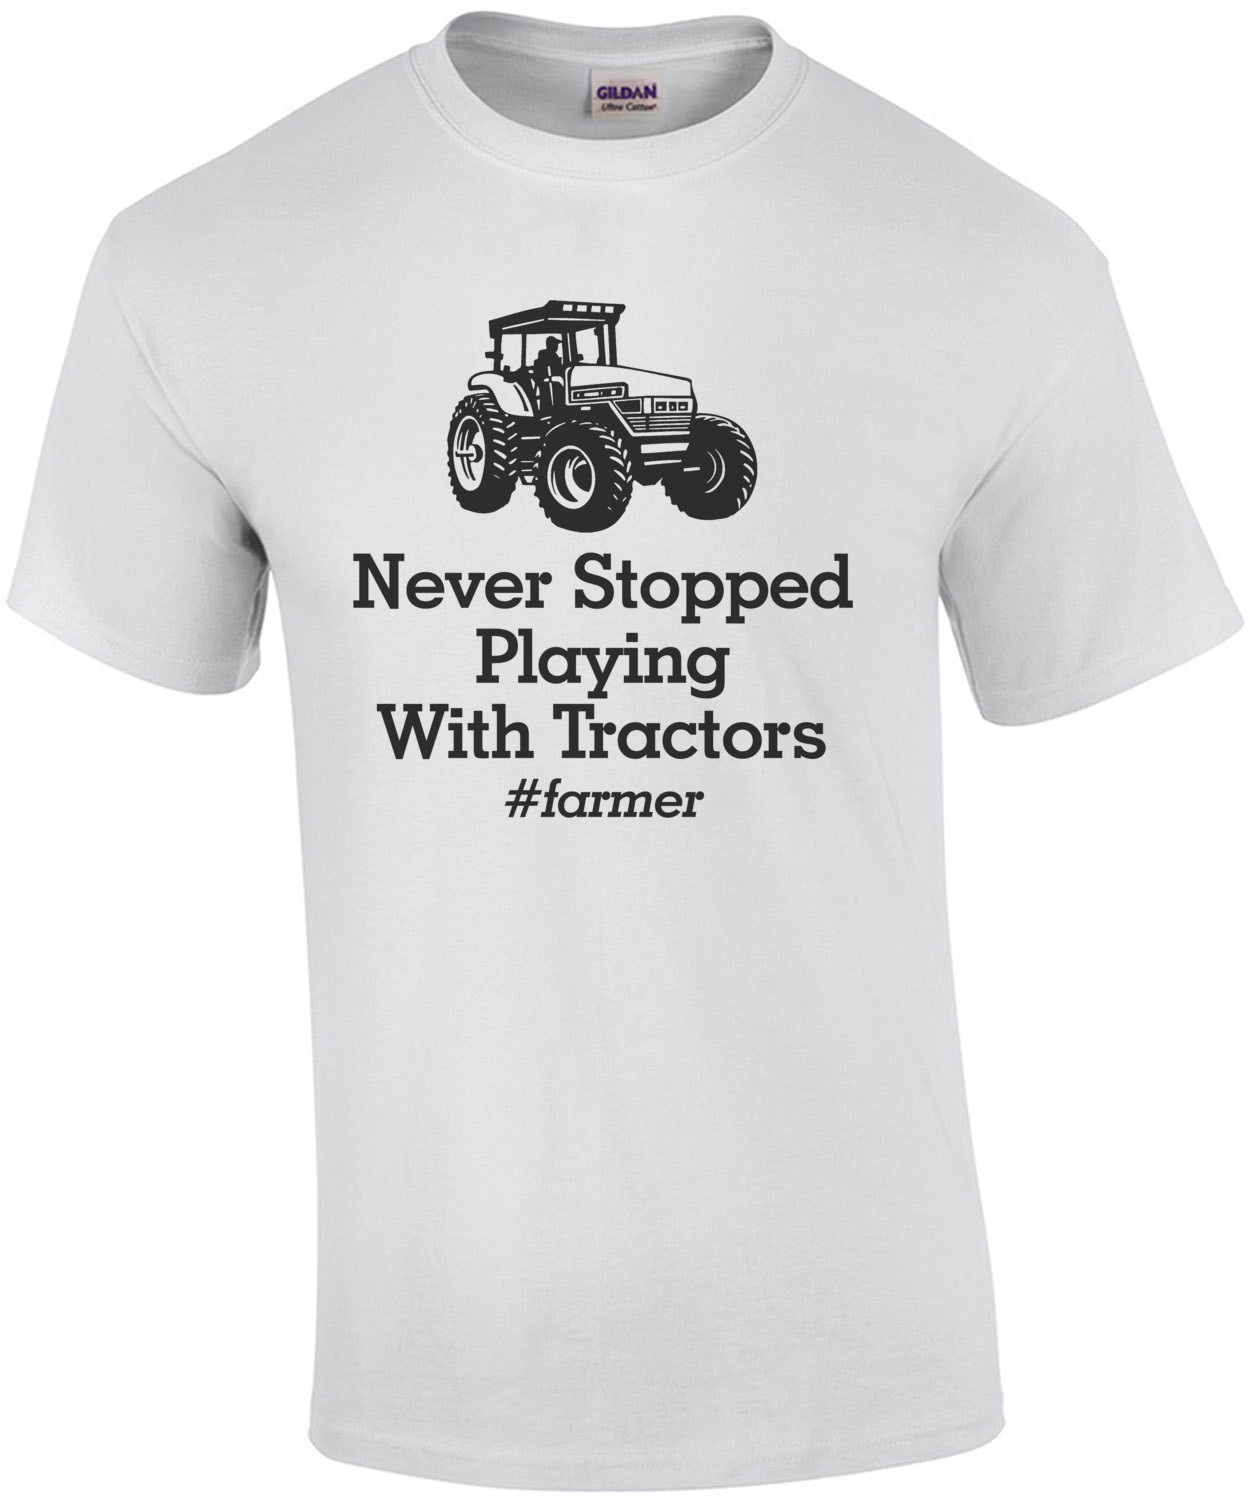 Never Stopped Playing With Tractors Farmer T-Shirt